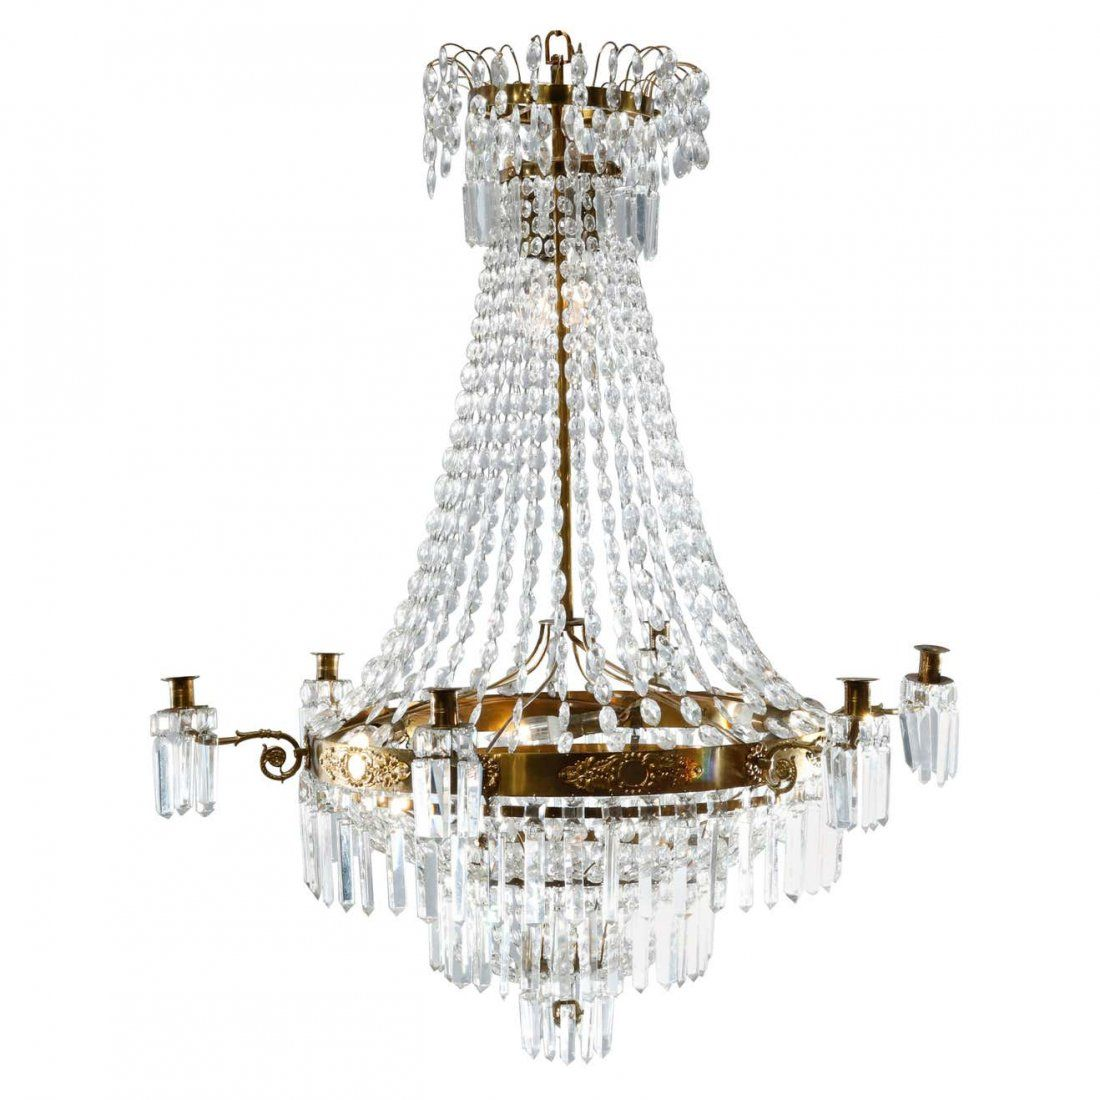 French Style Crystal & Bronzed Wedding Cake Chandelier